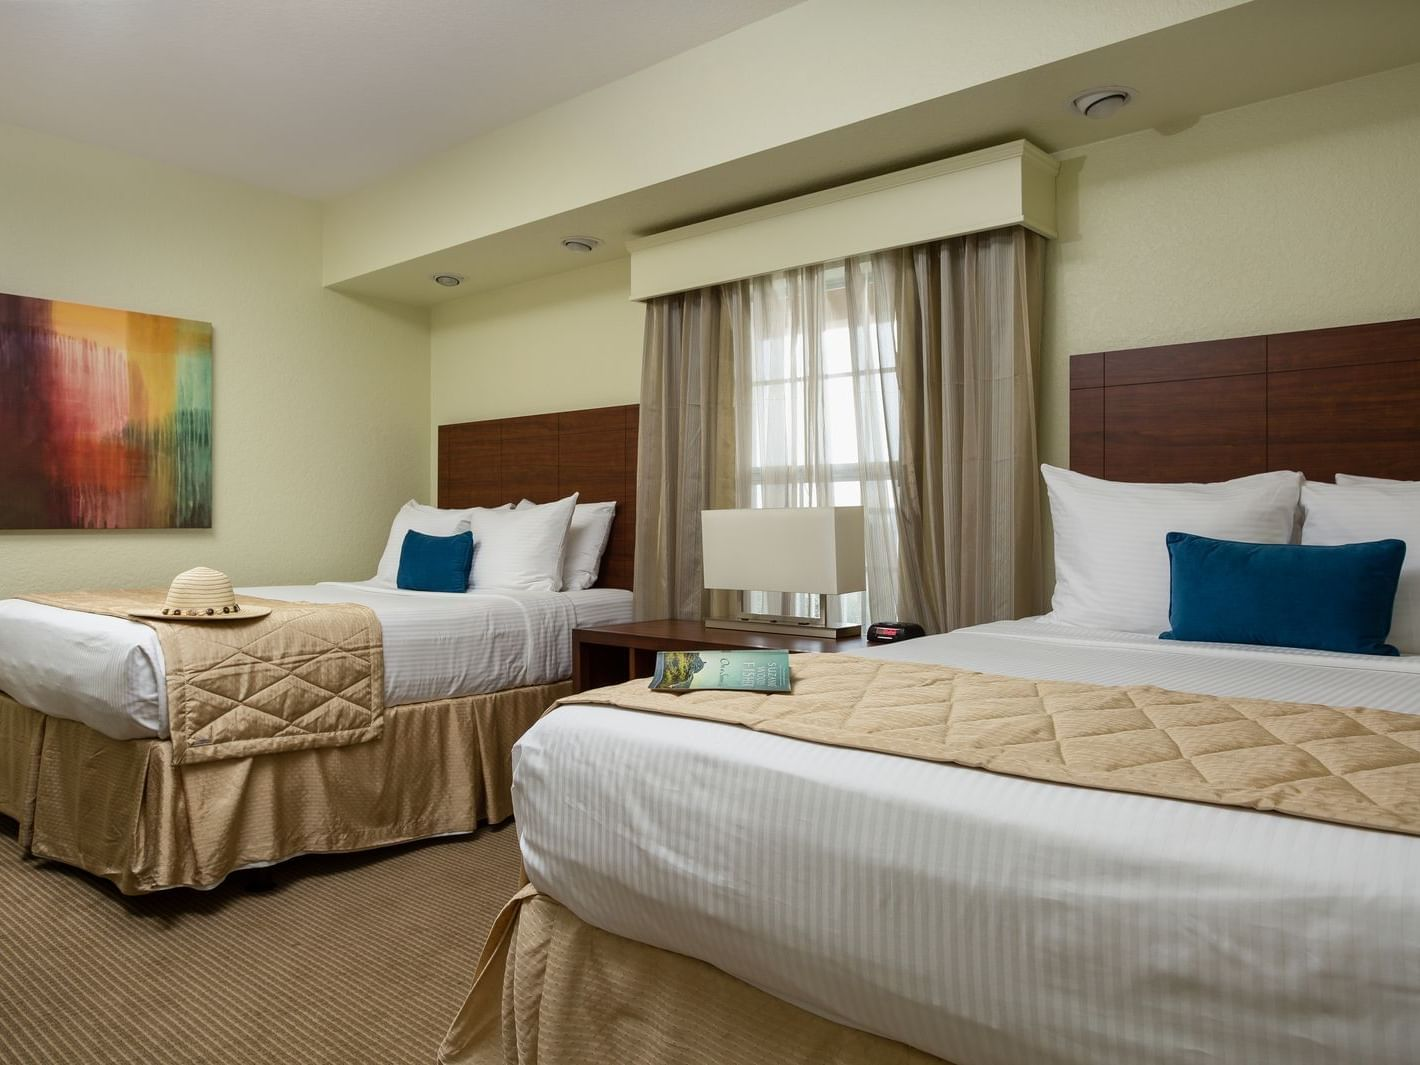 Three Bedroom Lock-Off Room with two beds at Mystic Dunes Resort